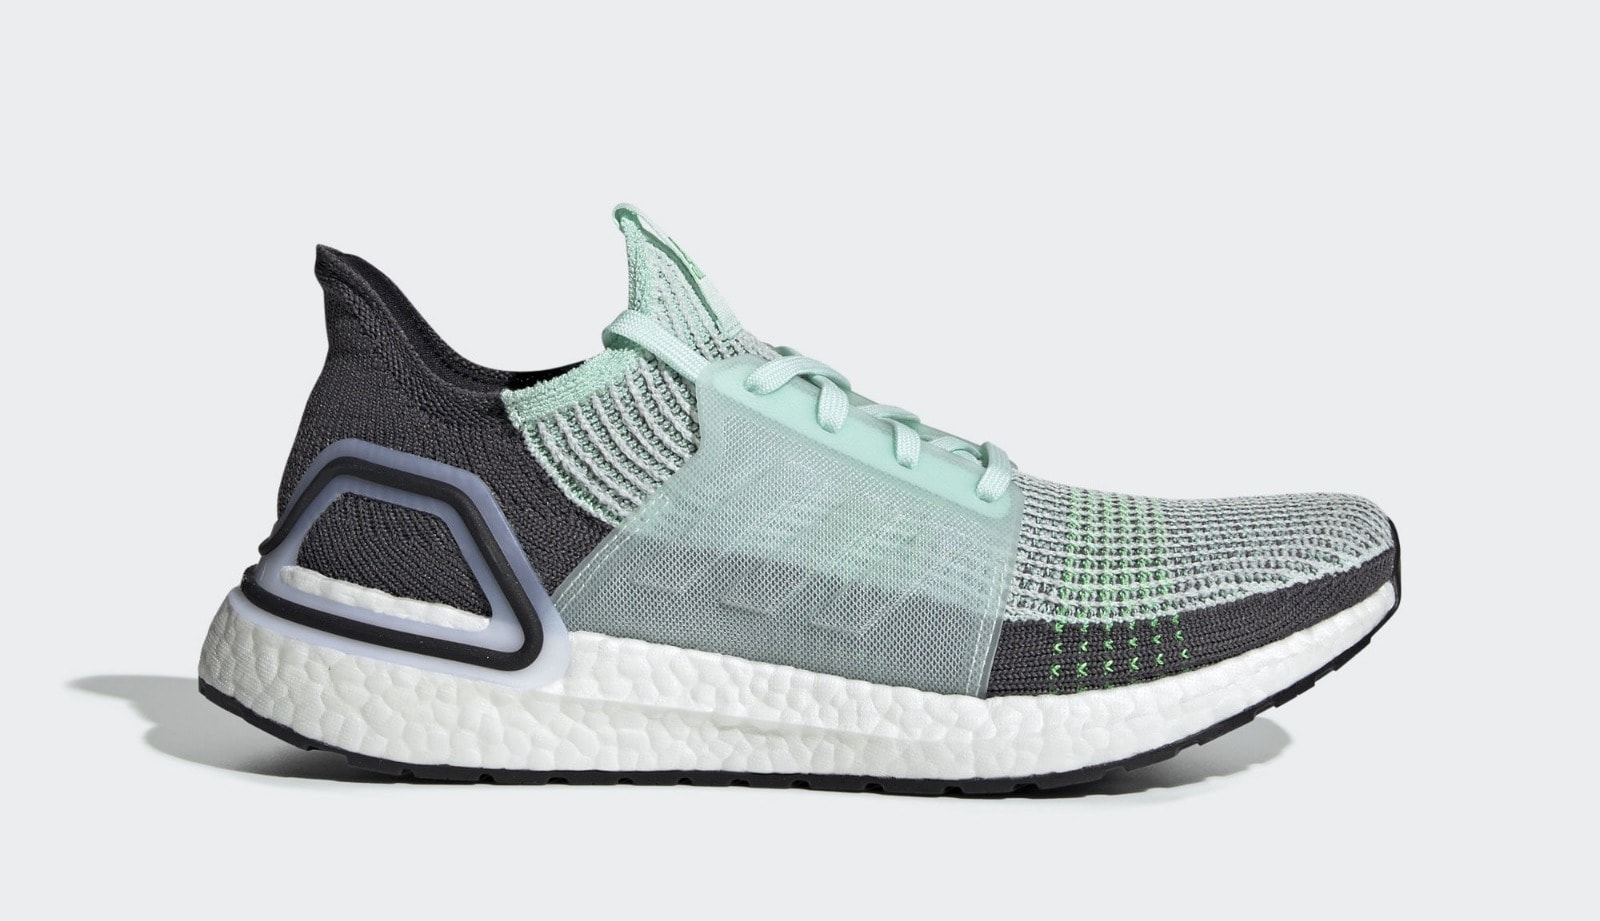 e4facf68e0d4 The adidas Ultra Boost 2019 is back for more. After kicking off the year in  a series of exciting colorways and great reviews